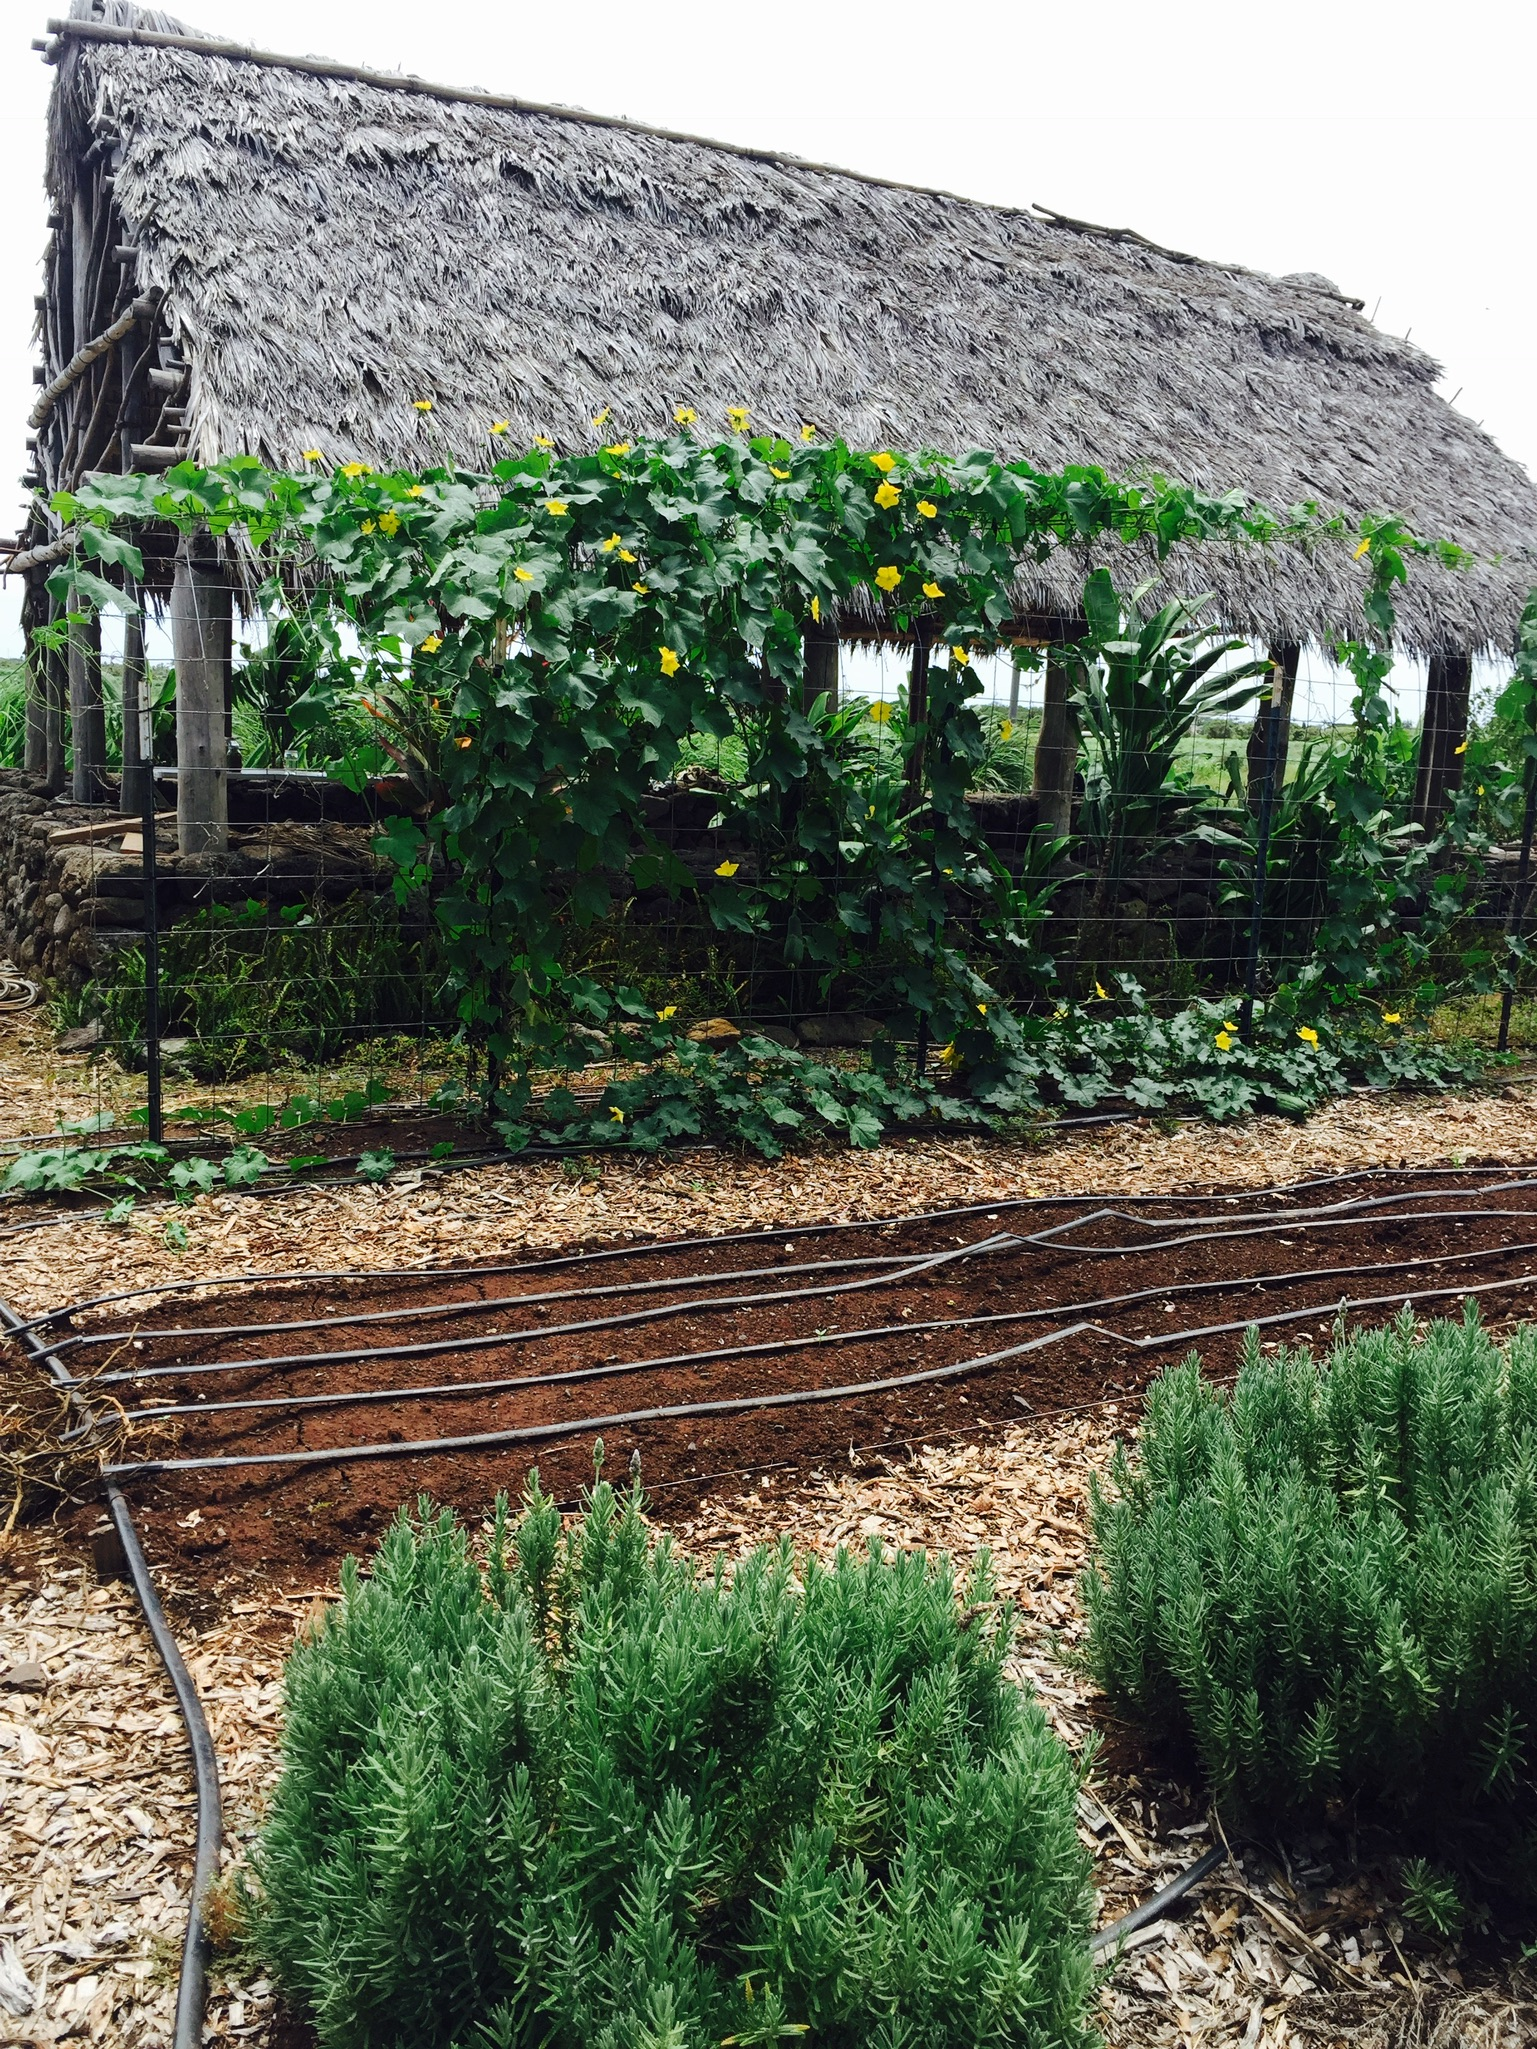 Seeing the roof of the hale with a trellis full of squash vines